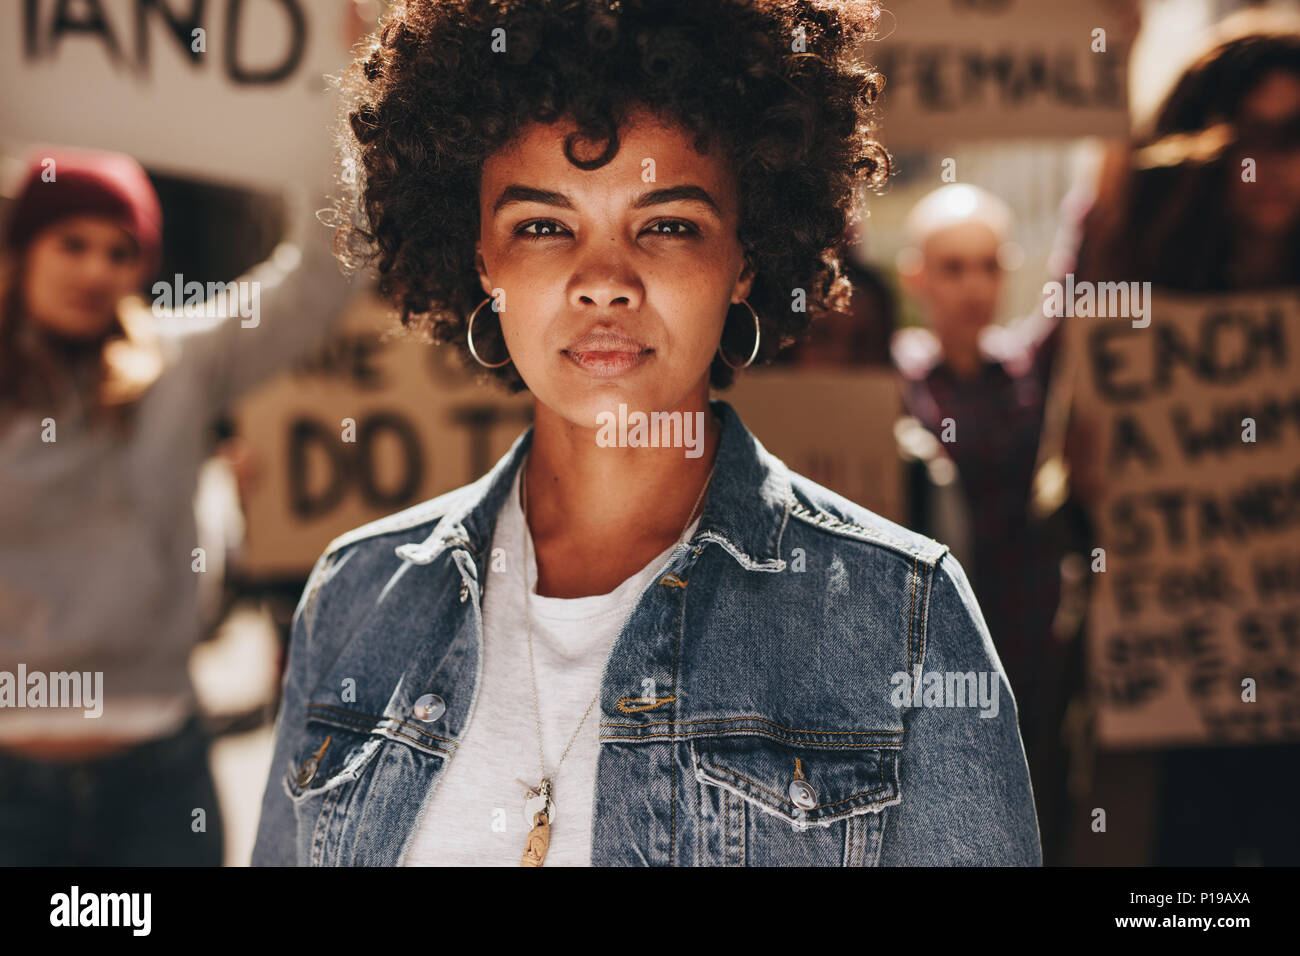 Young african woman standing outdoors with group of demonstrator in background. Woman protesting with group of activists outdoors on road. - Stock Image